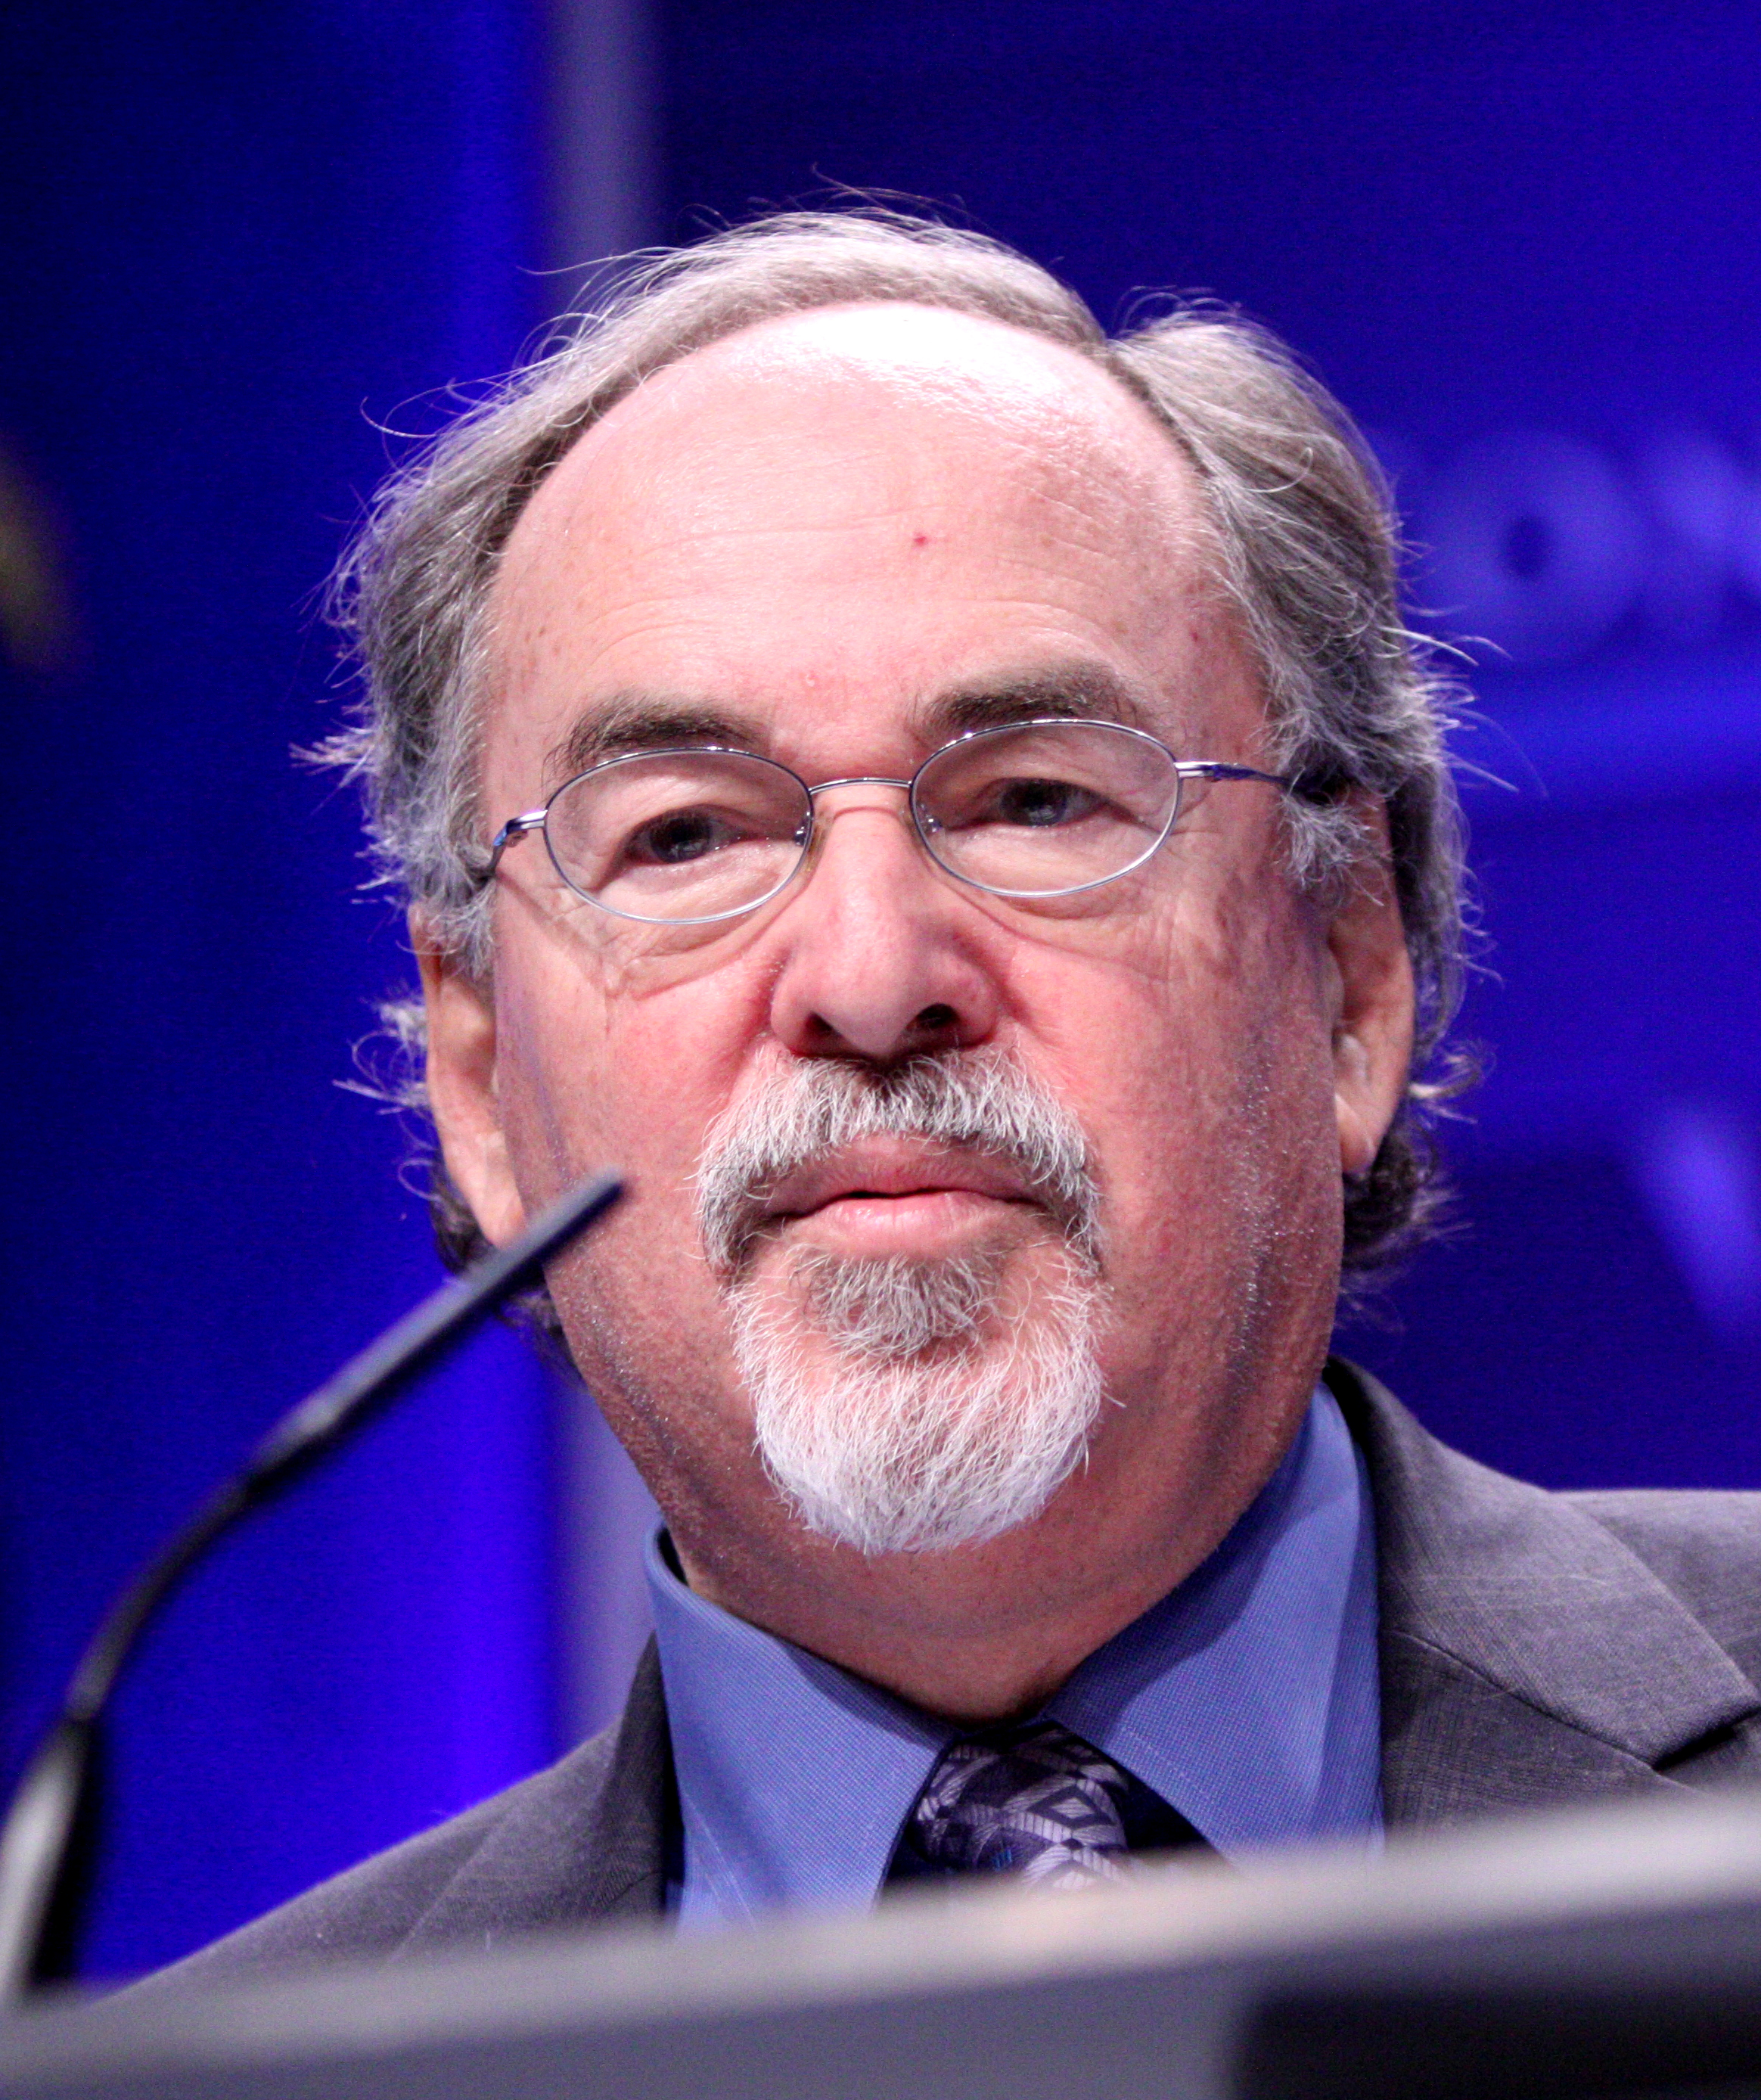 David Horowitz, Founder of The David Horowitz Freedom Center.